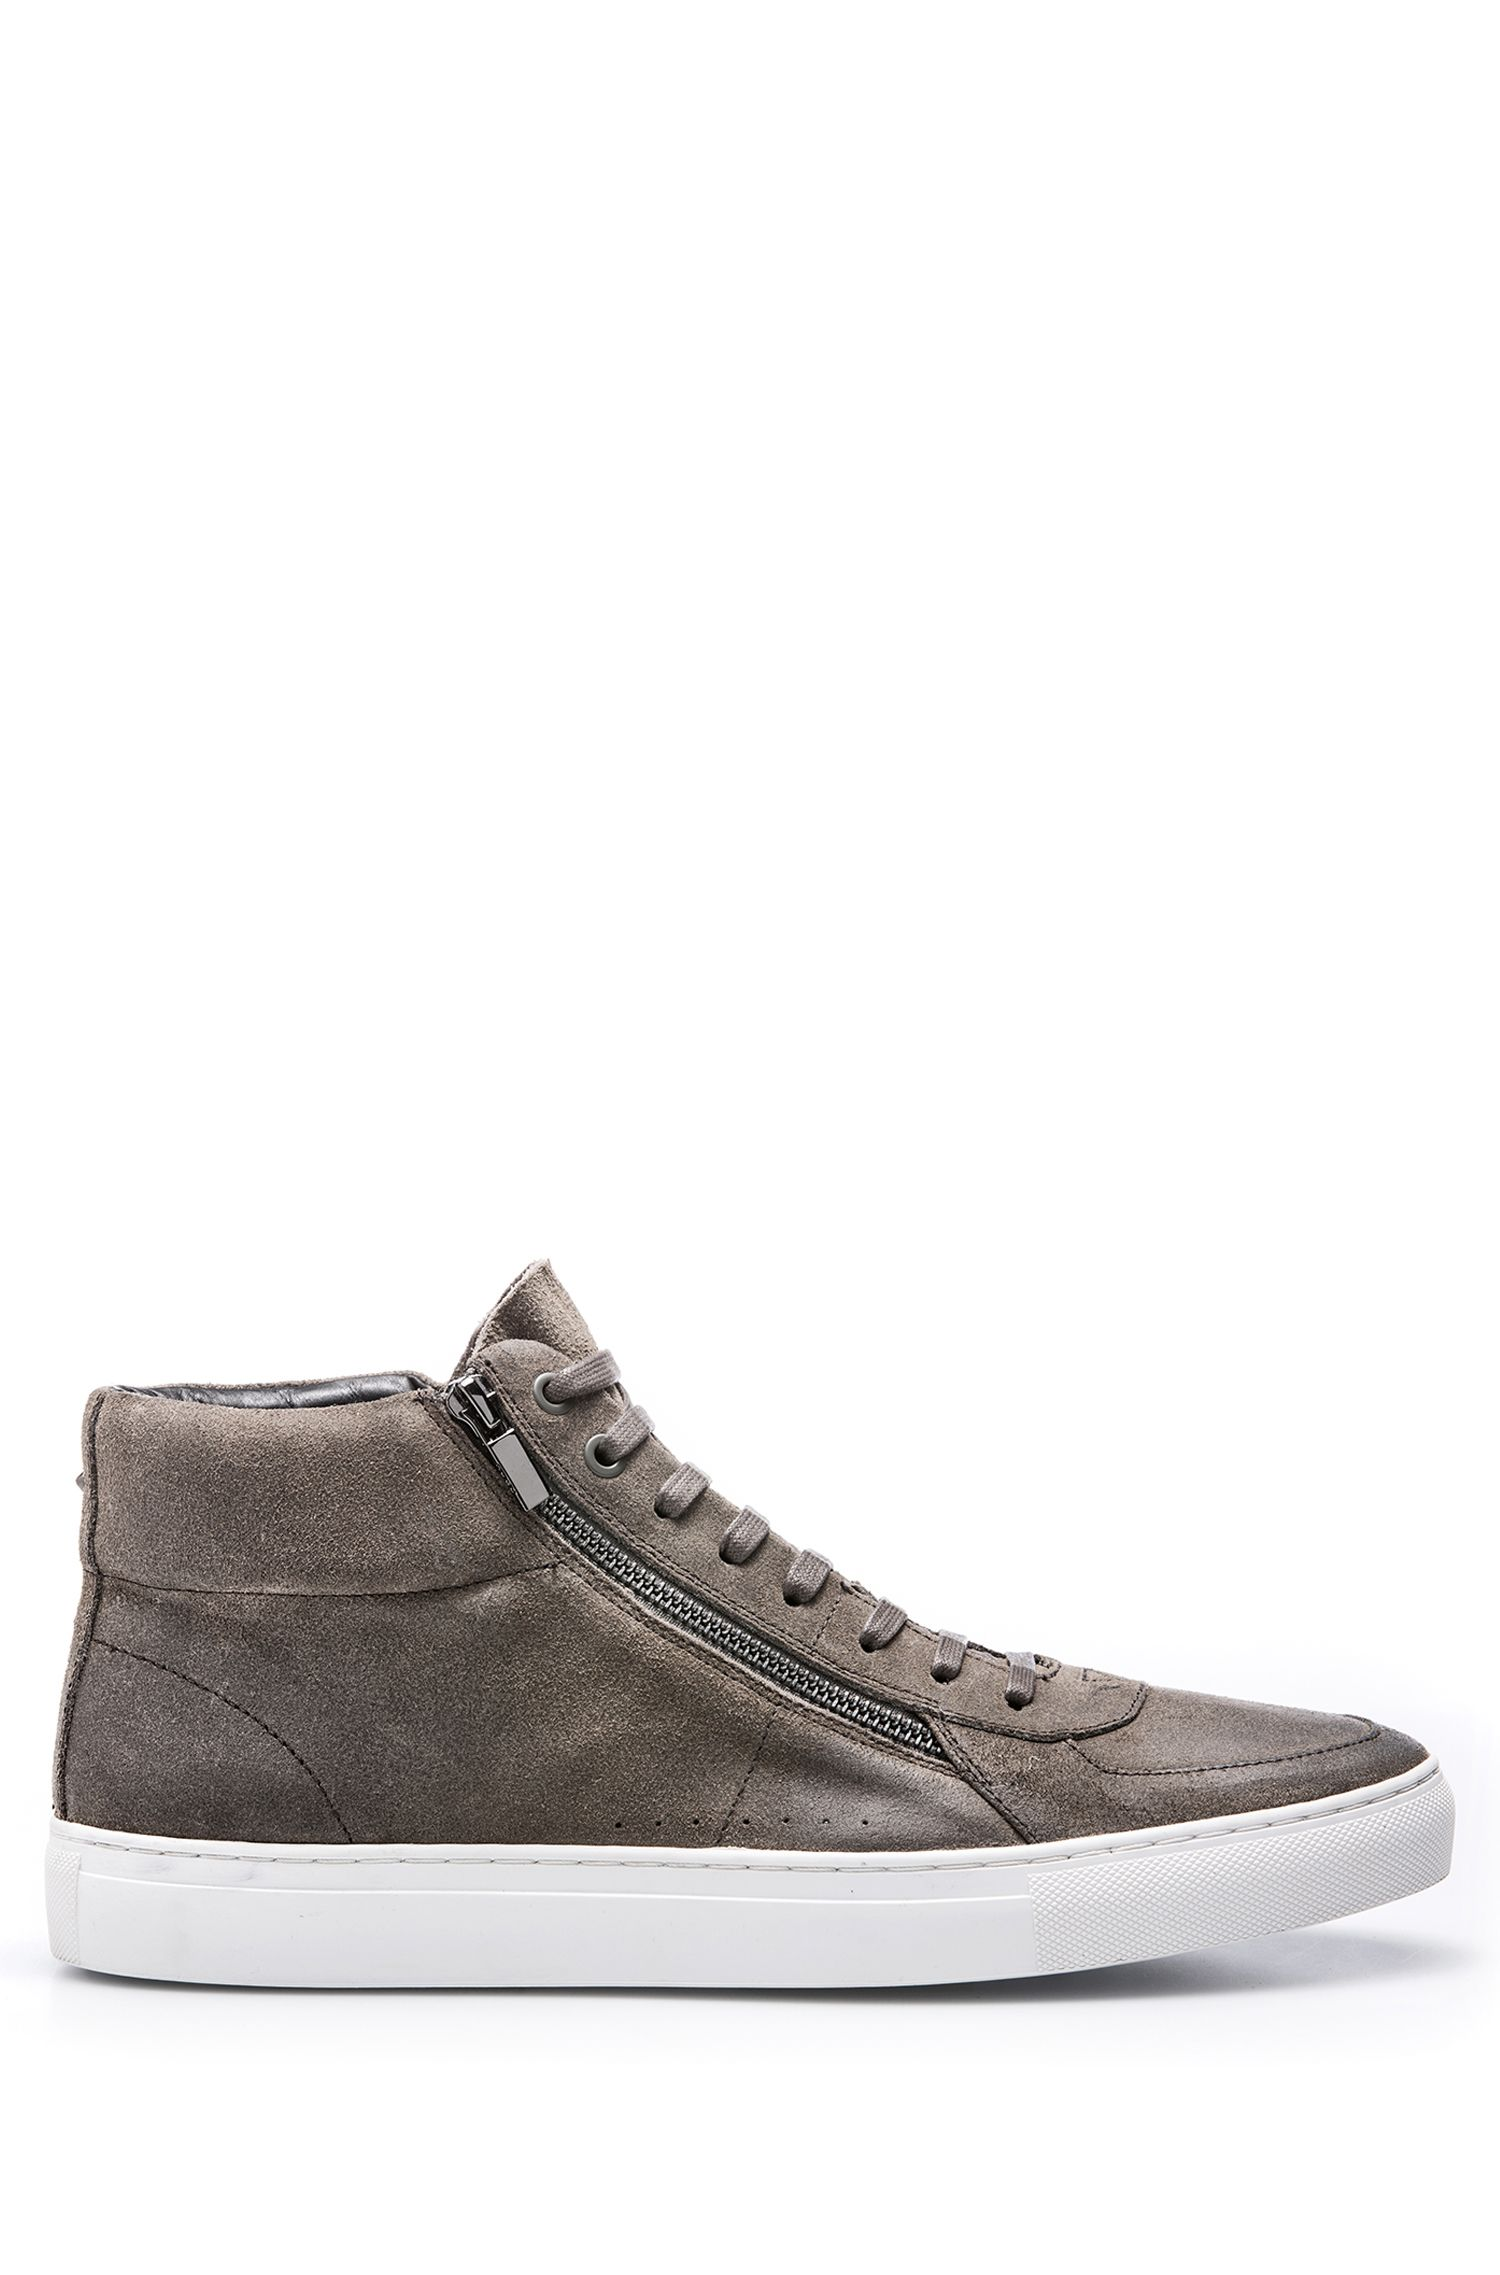 High-top sneakers in waxed suede with double zip